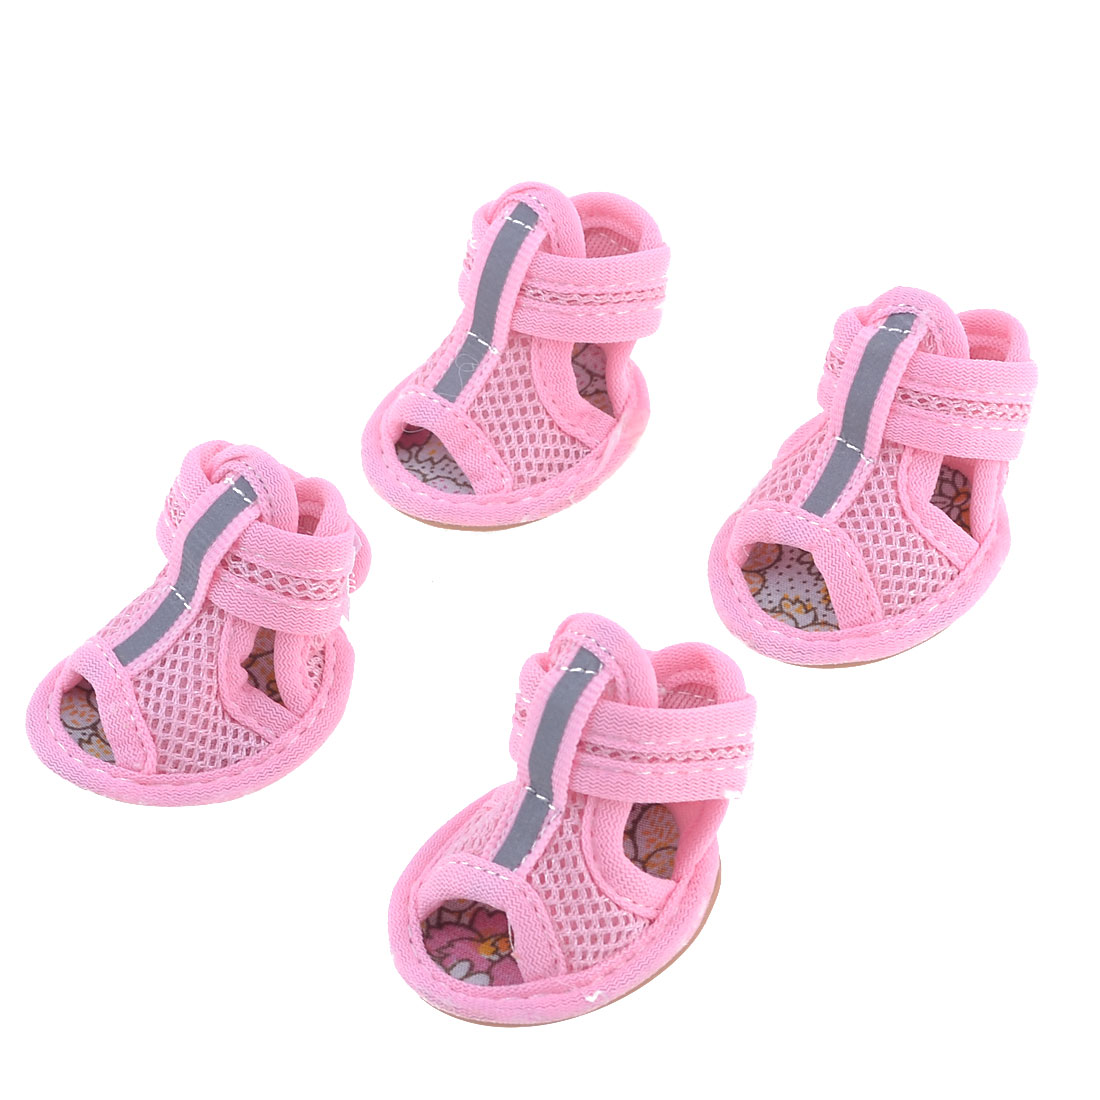 Unique Bargains 2 Pairs Rubber Sole Pink Mesh Sandals Yorkie Chihuaha Dog Shoes Size S